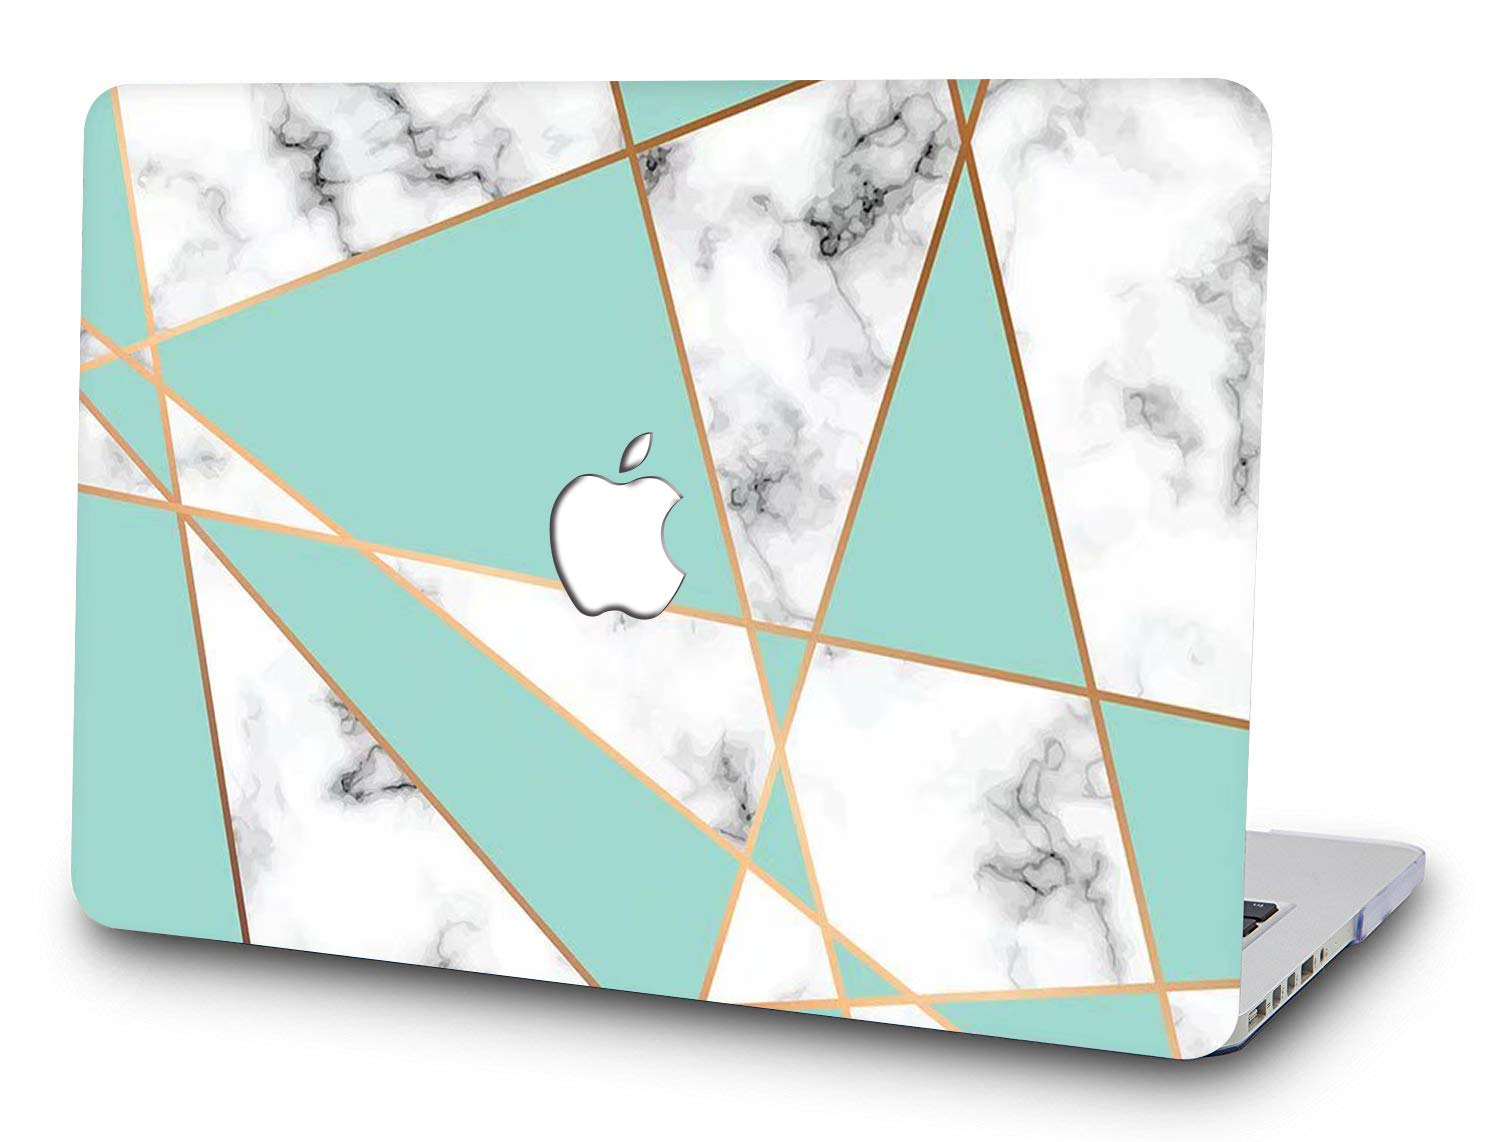 Irregular Marble SAYA Protective Waterproof Hard Case Cover Shell for MacBook Pro 13 Inch Model A 1278 Non-Retina